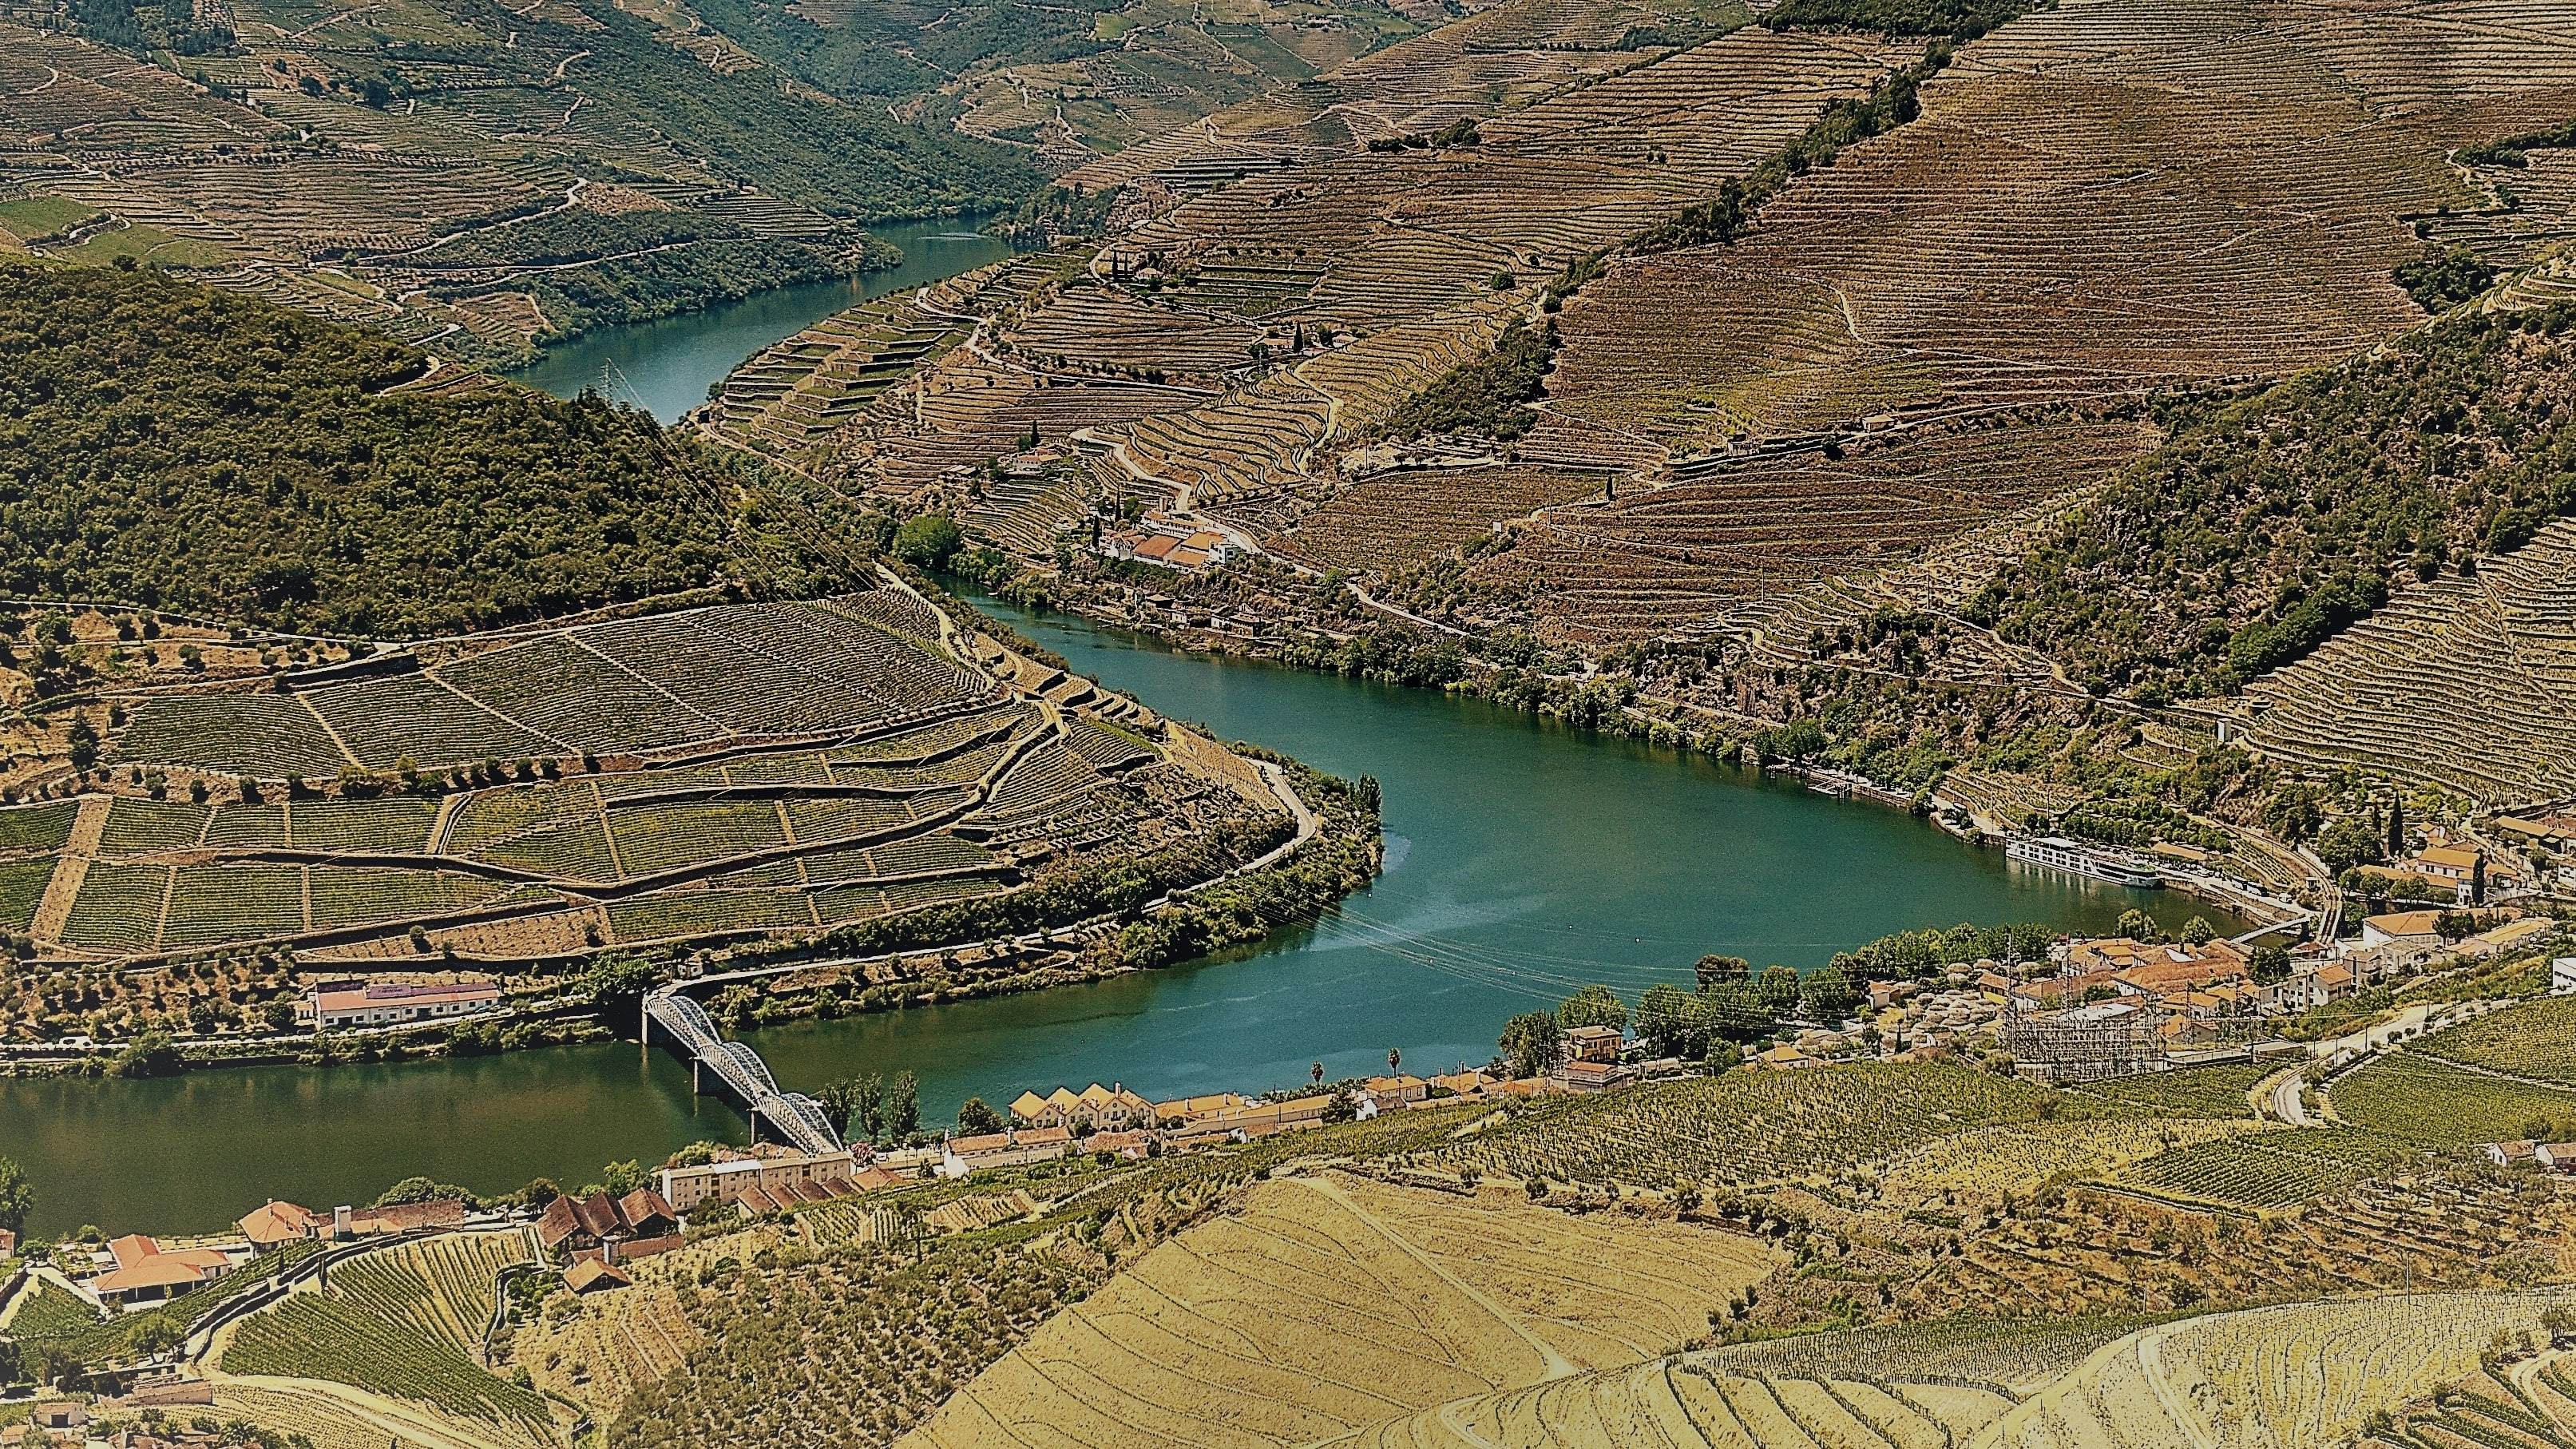 Visit The Most Famous Wine Village in Douro Valley